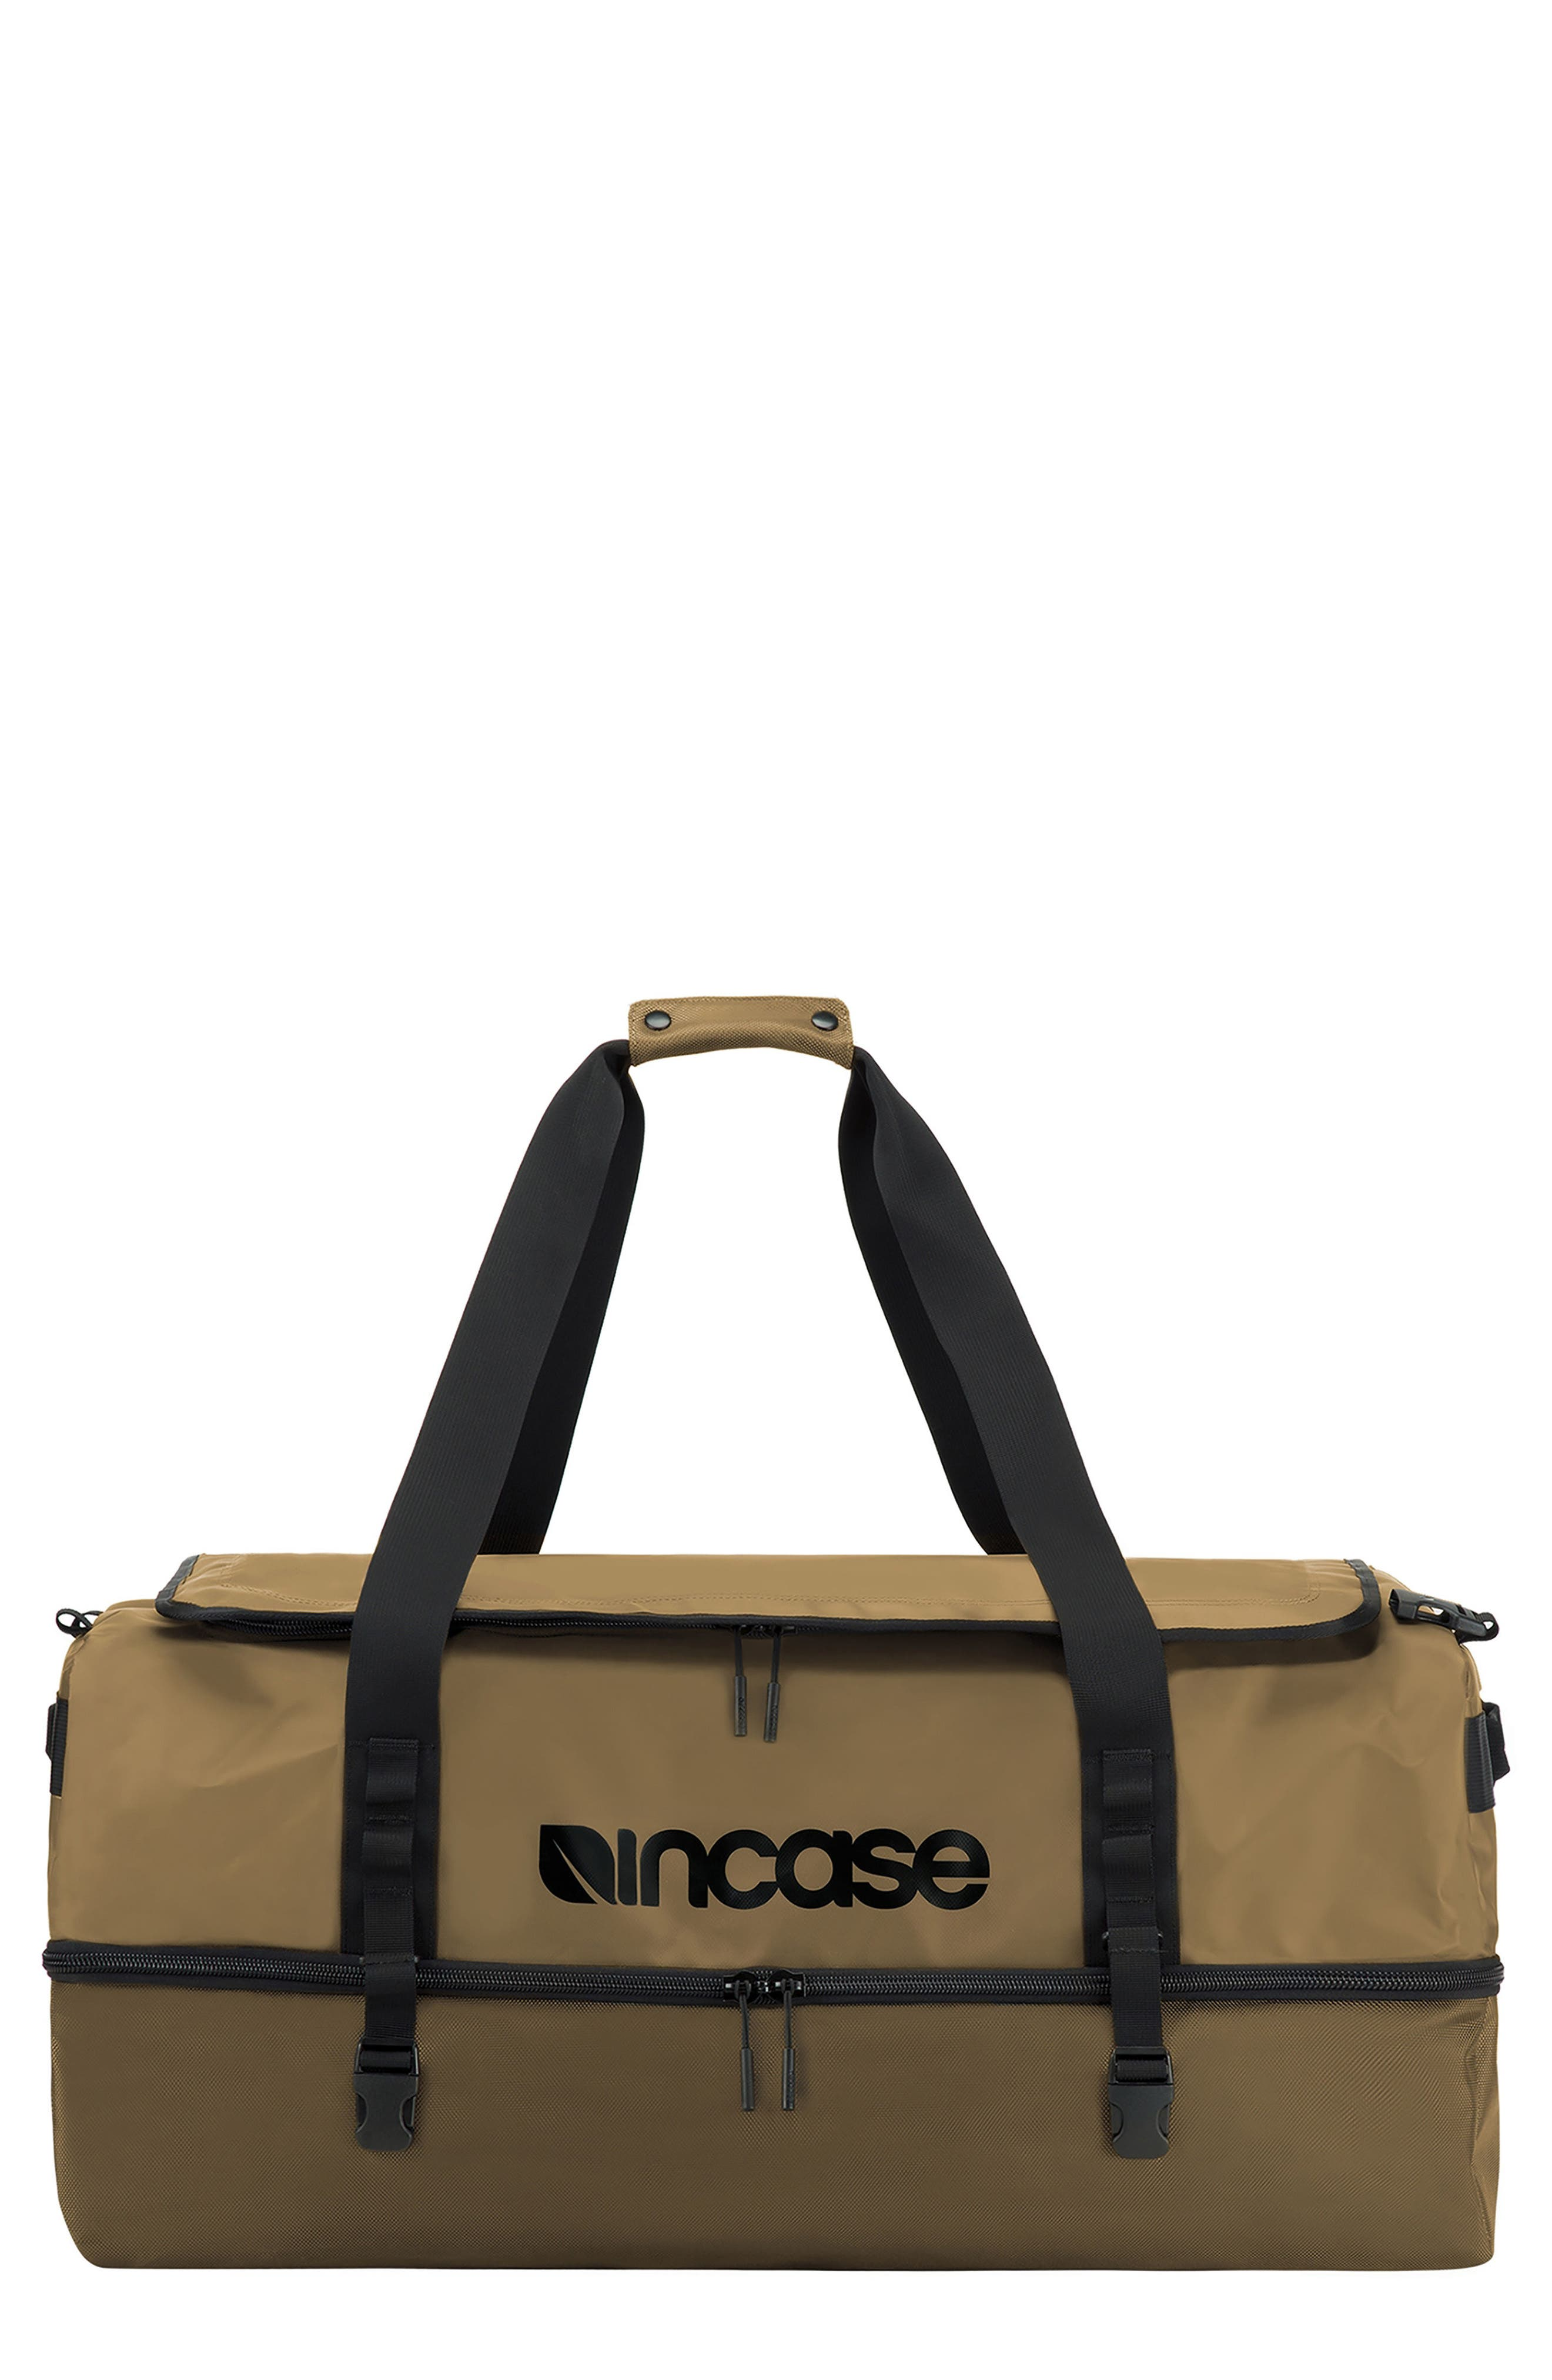 Main Image - Incase Designs TRACTO Small Split Convertible Duffel Bag